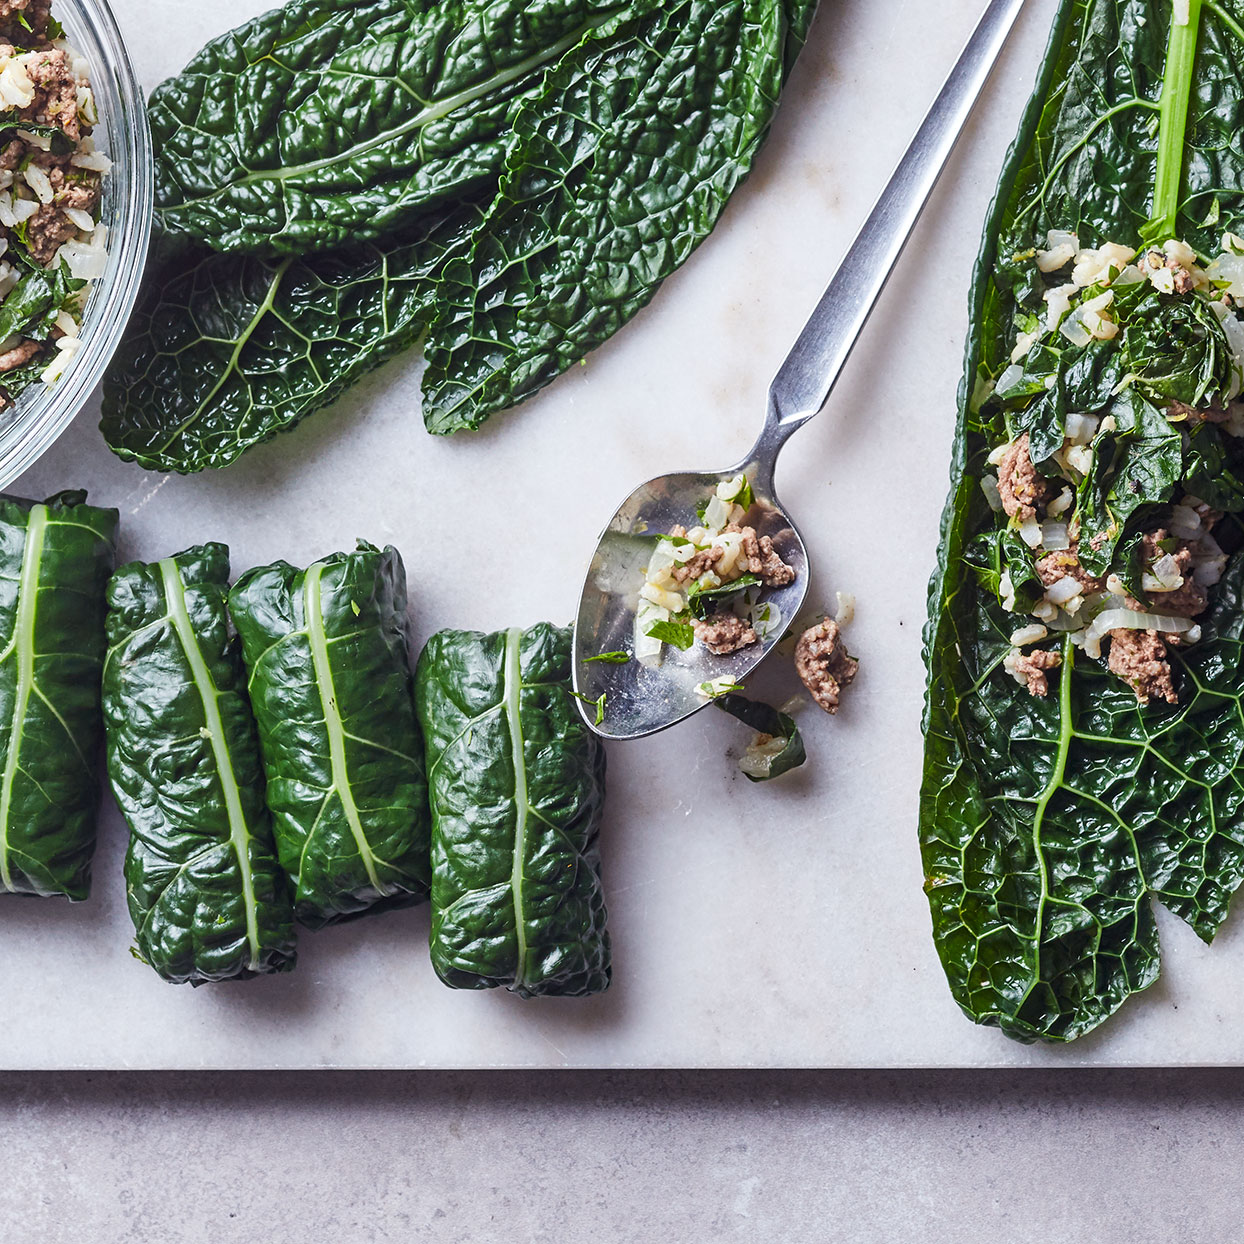 For a quick version of stuffed grape leaves, we've put all the flavors of a traditional dolma recipe into a cooked filling that's simply wrapped in blanched kale leaves—no need to simmer for hours.